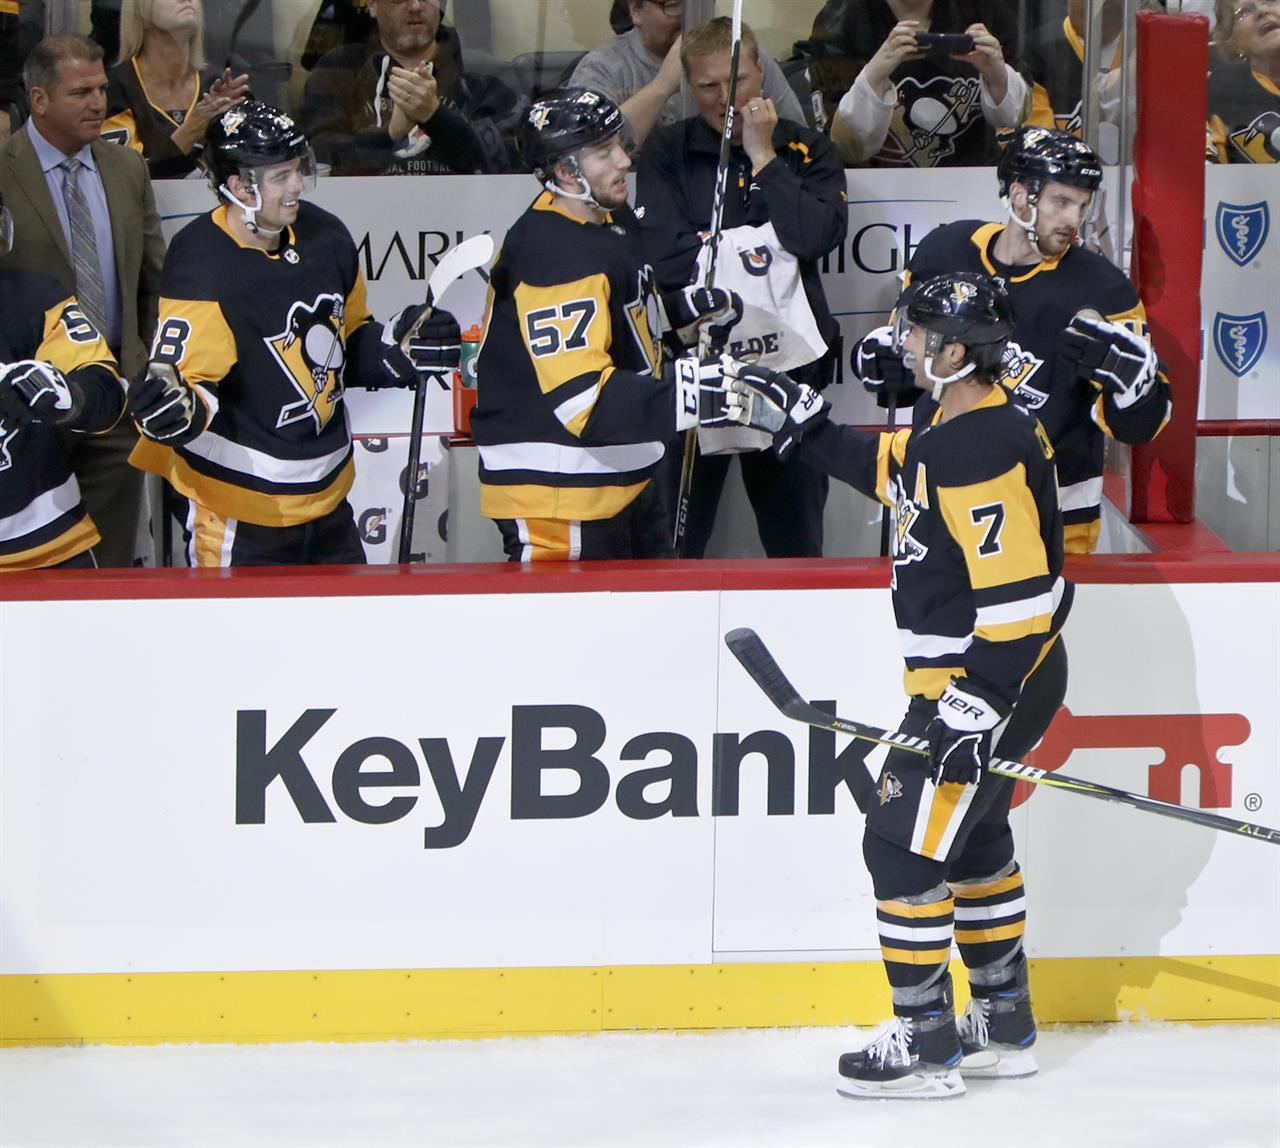 ba9d94da8 Pittsburgh Penguins' Matt Cullen (7) is congratulated by teammates on the  bench after scoring his second goal of the game during the third period of  an NHL ...